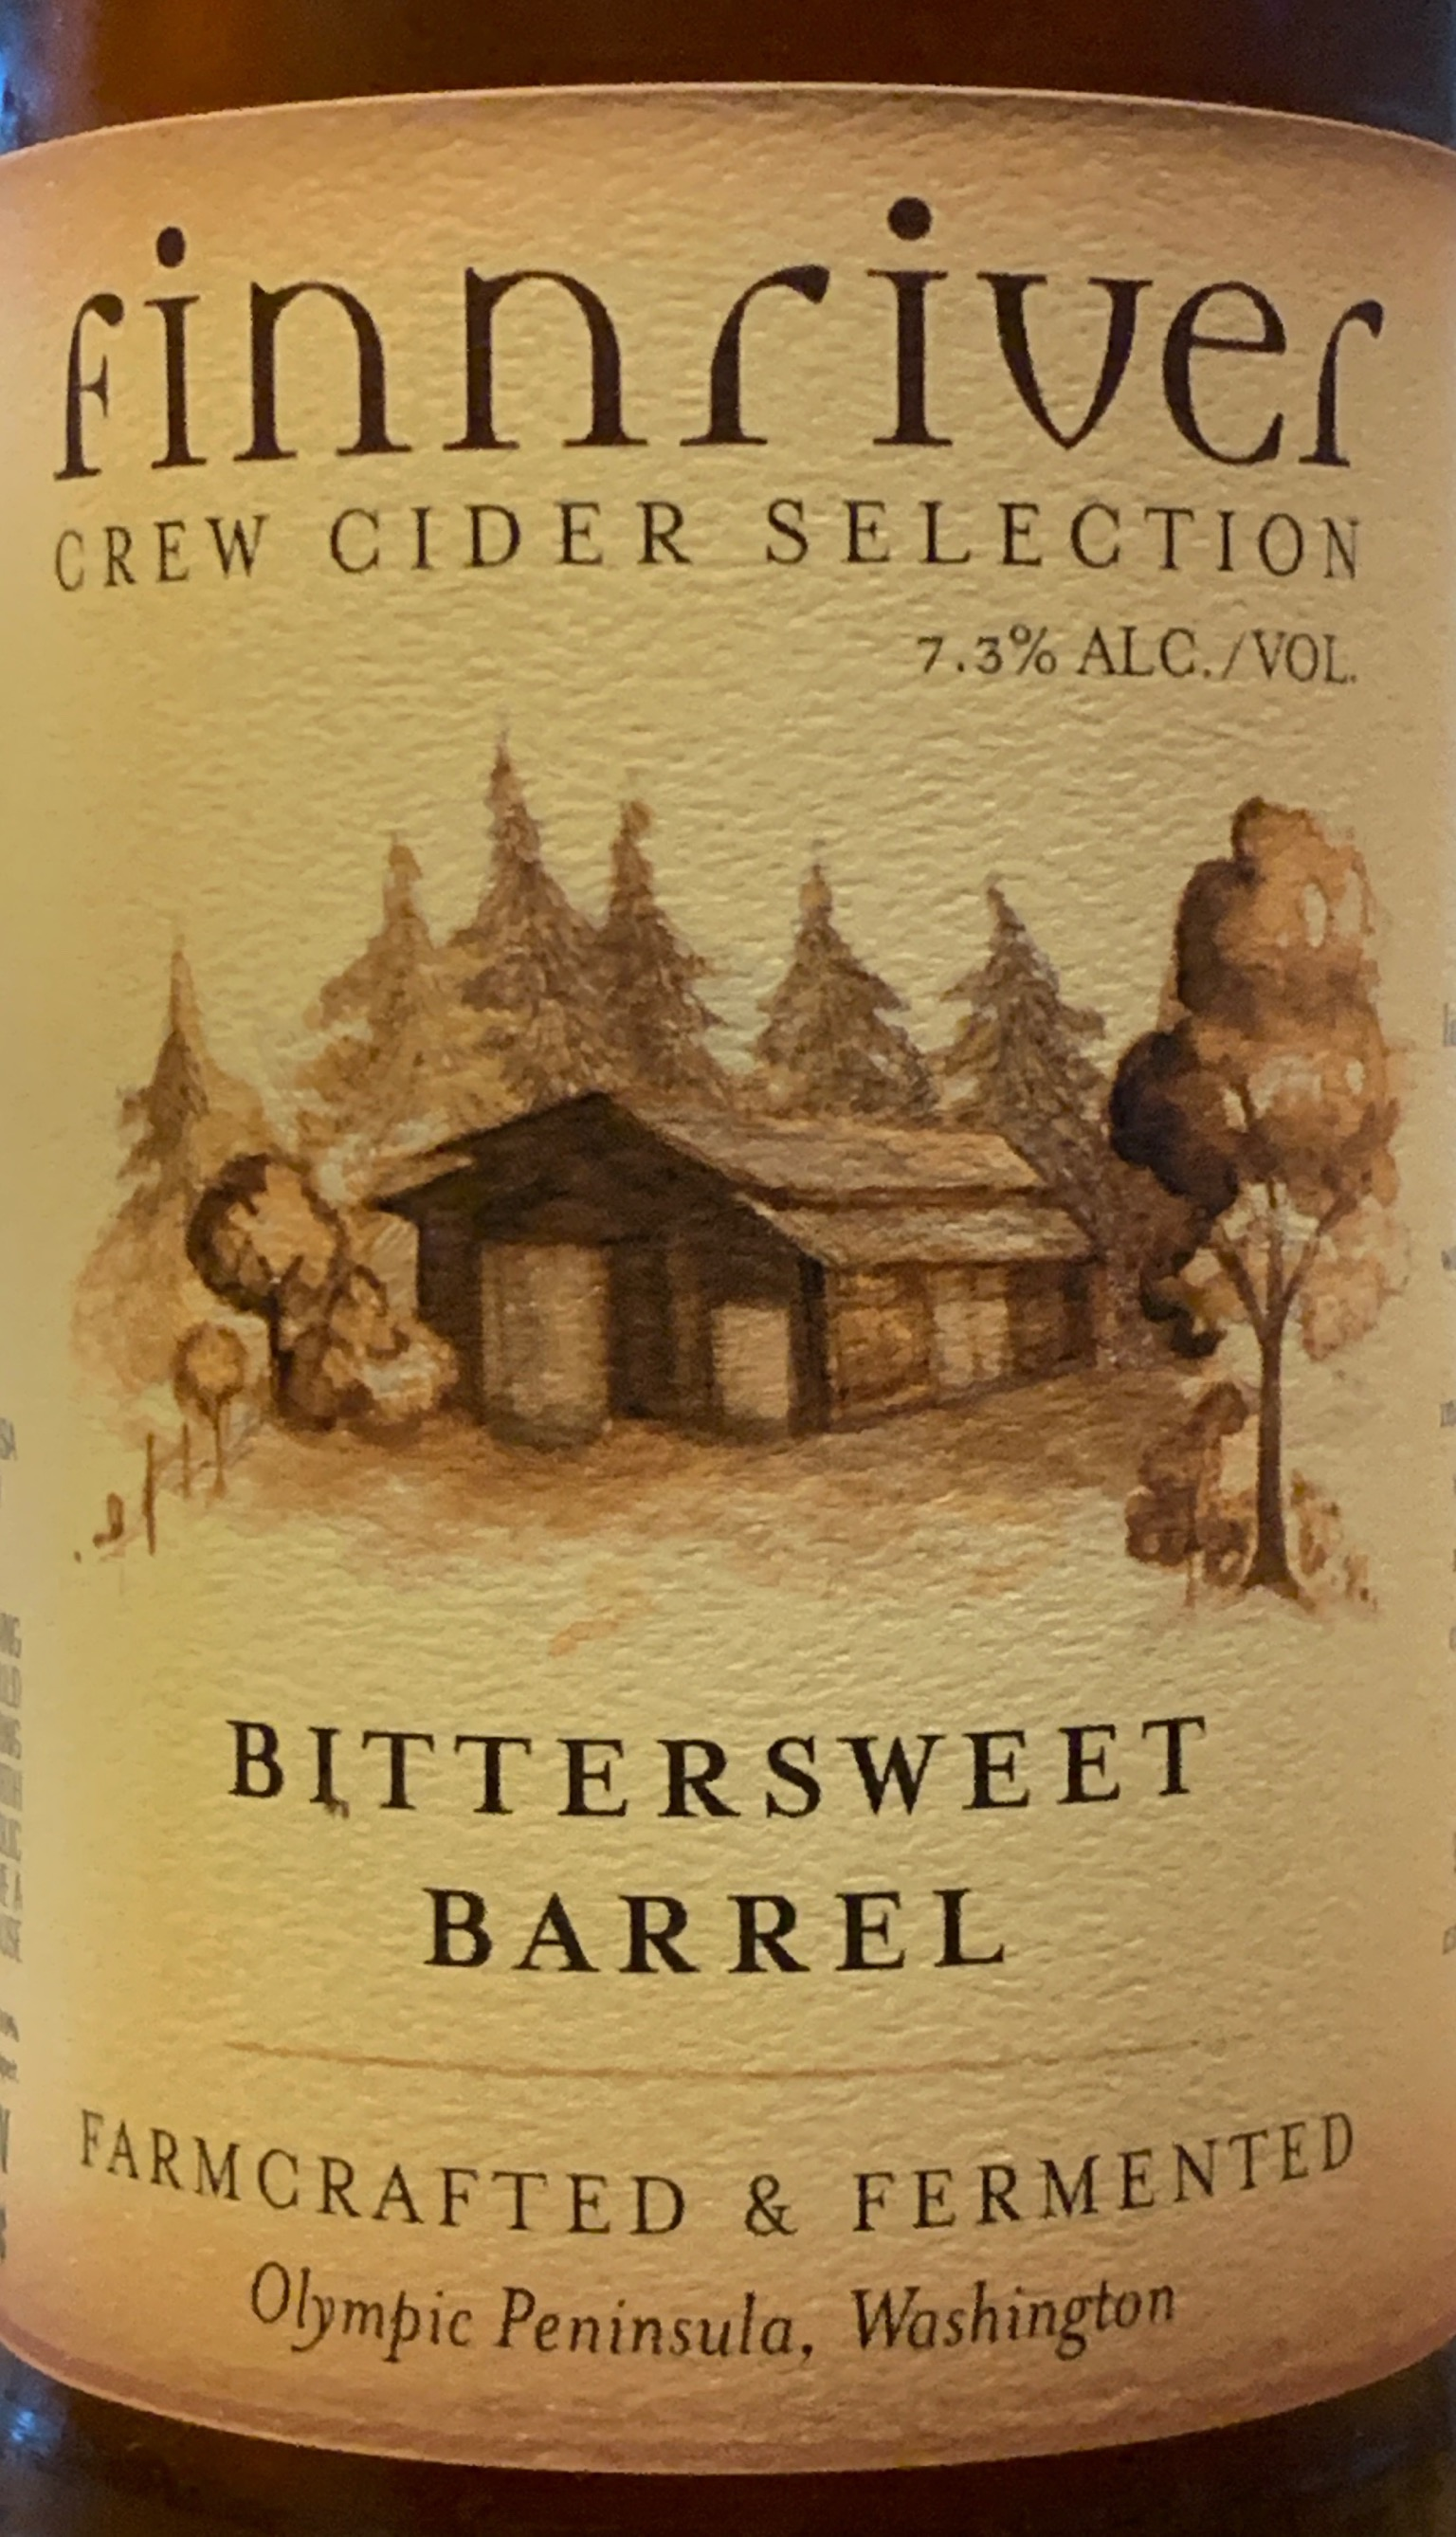 Crew Cider Selection - Bittersweet Barrel